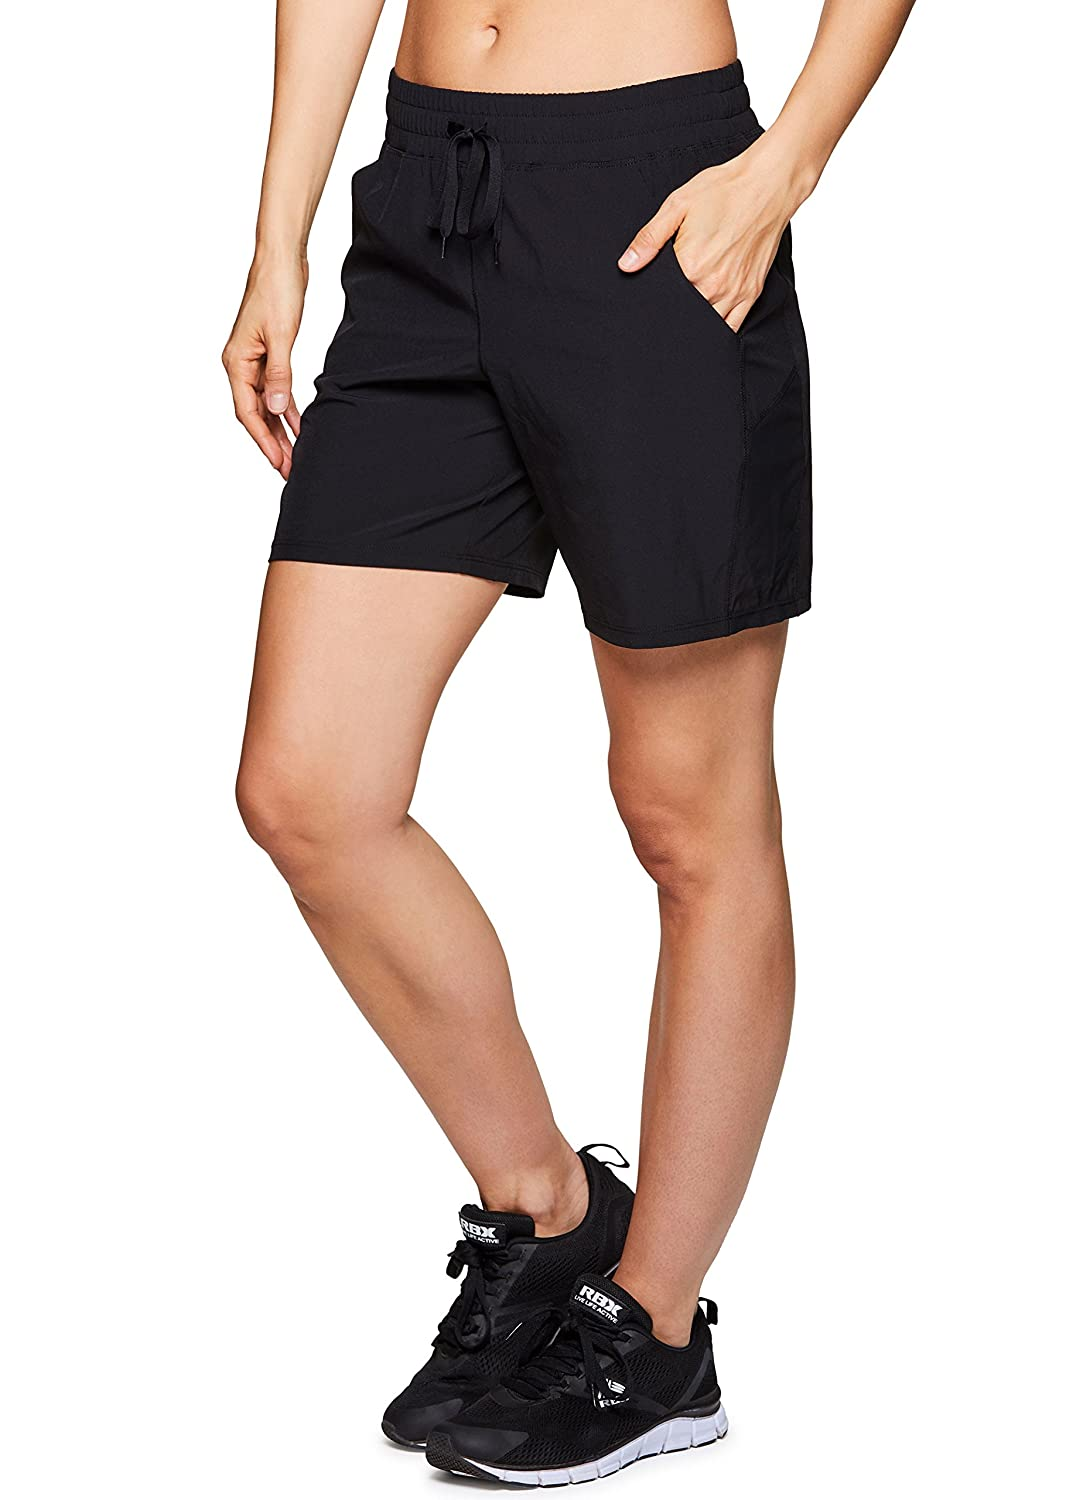 RBX Active Women's Relaxed Fit Breathable Ventilated Athletic Short ACR5006